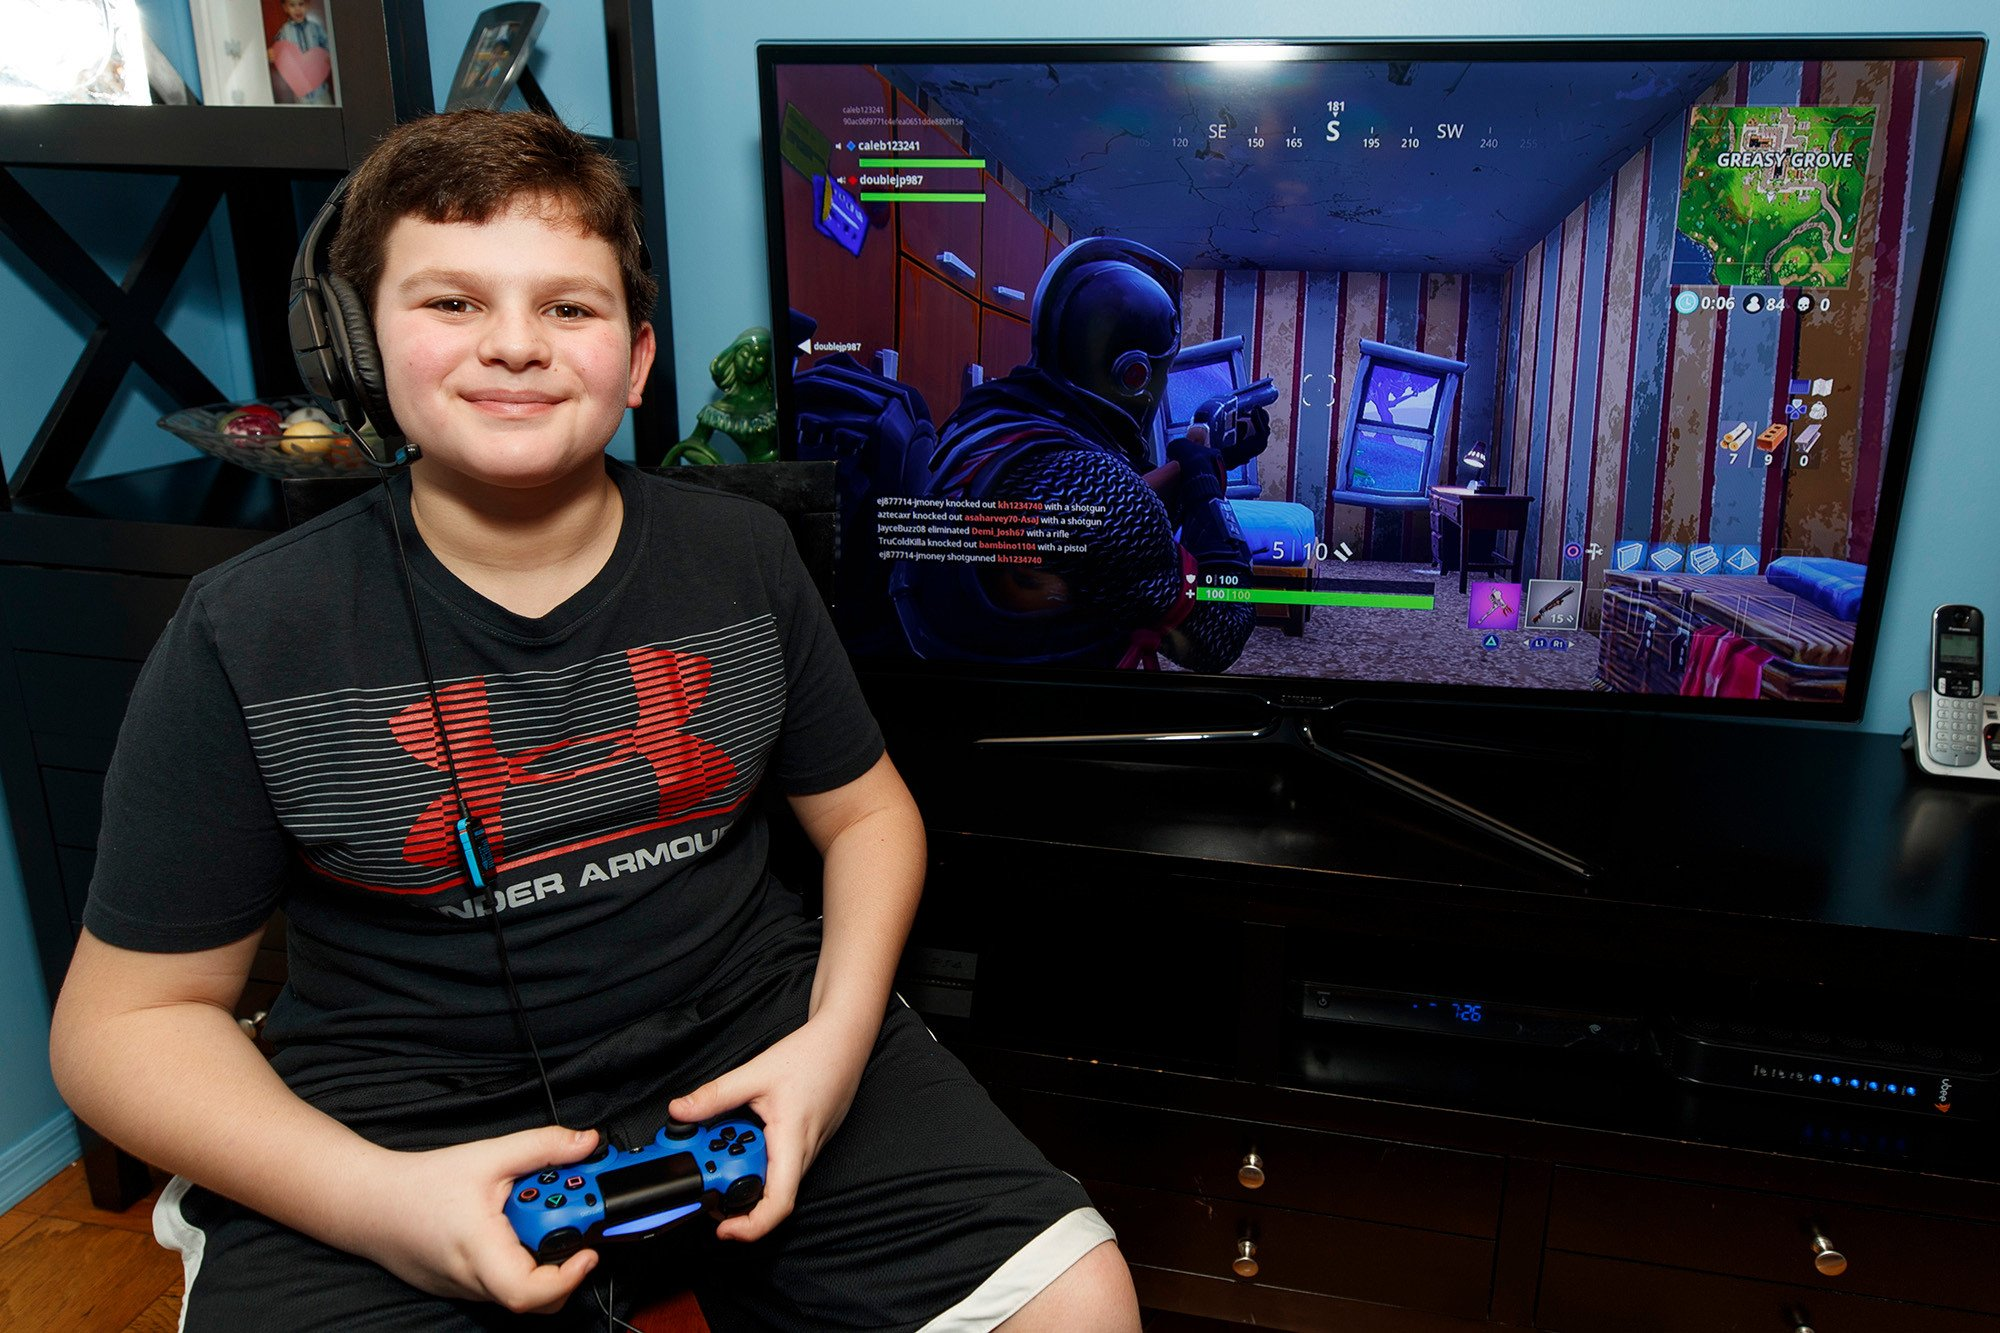 Popular video game driving teens wild — and parents crazy